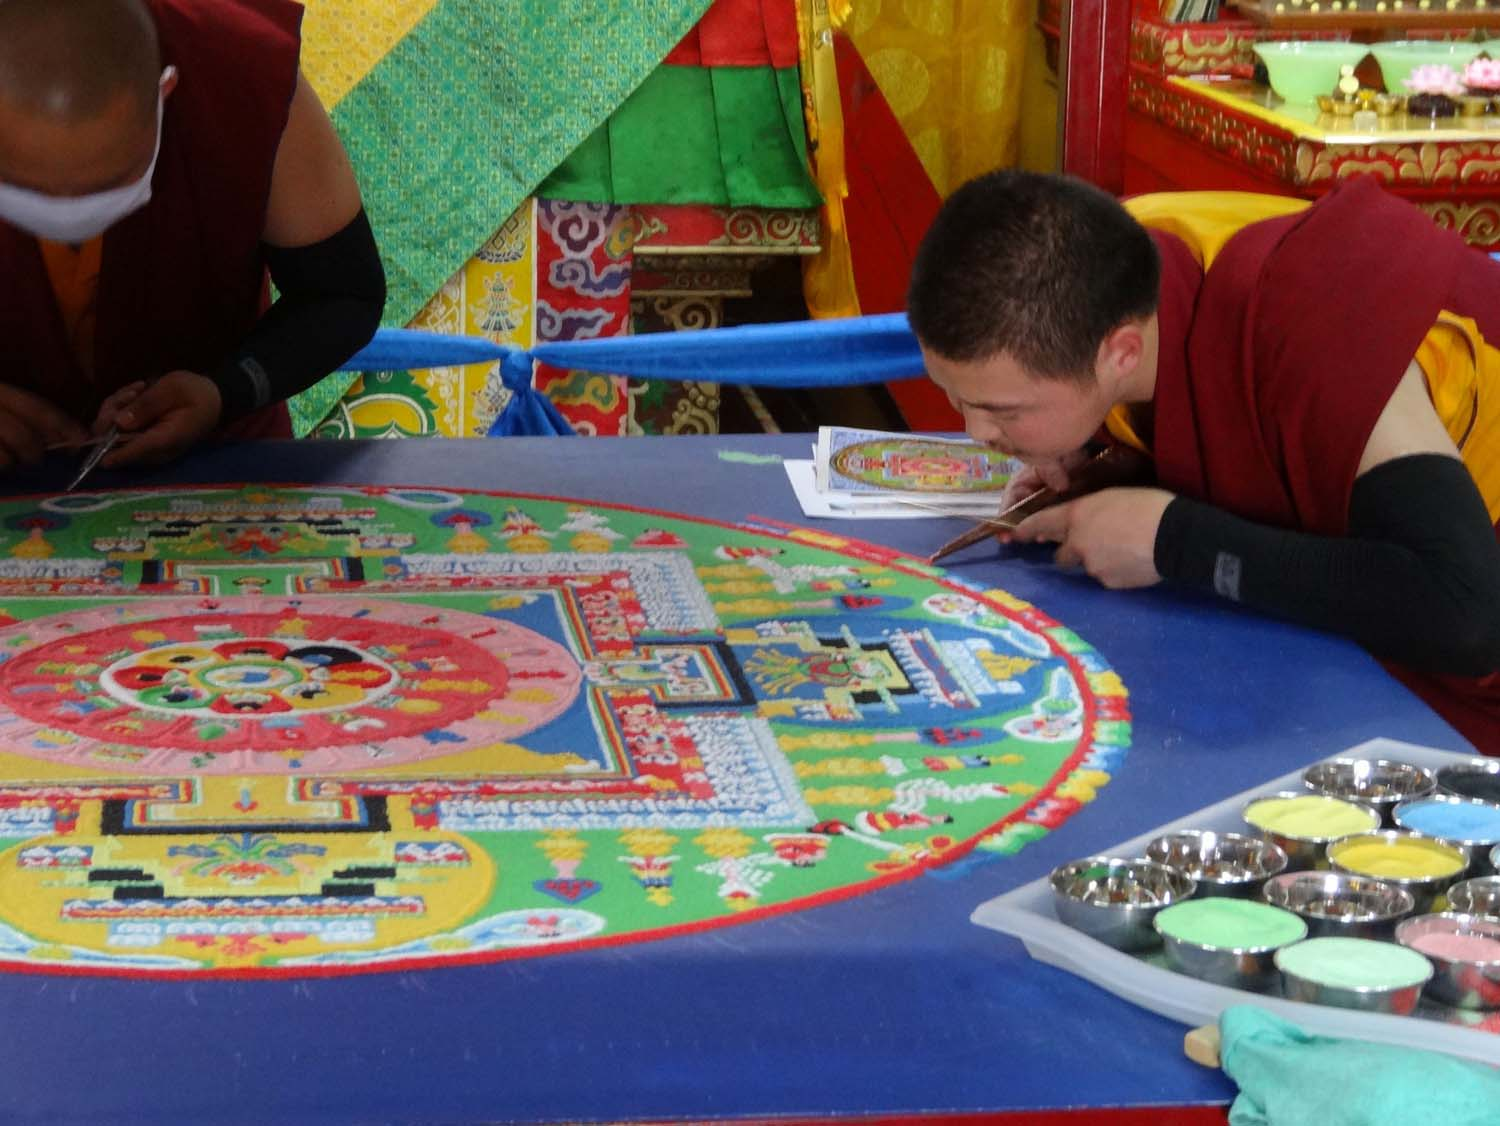 monks creating a beautiful sand painting (monnikenwerk!)